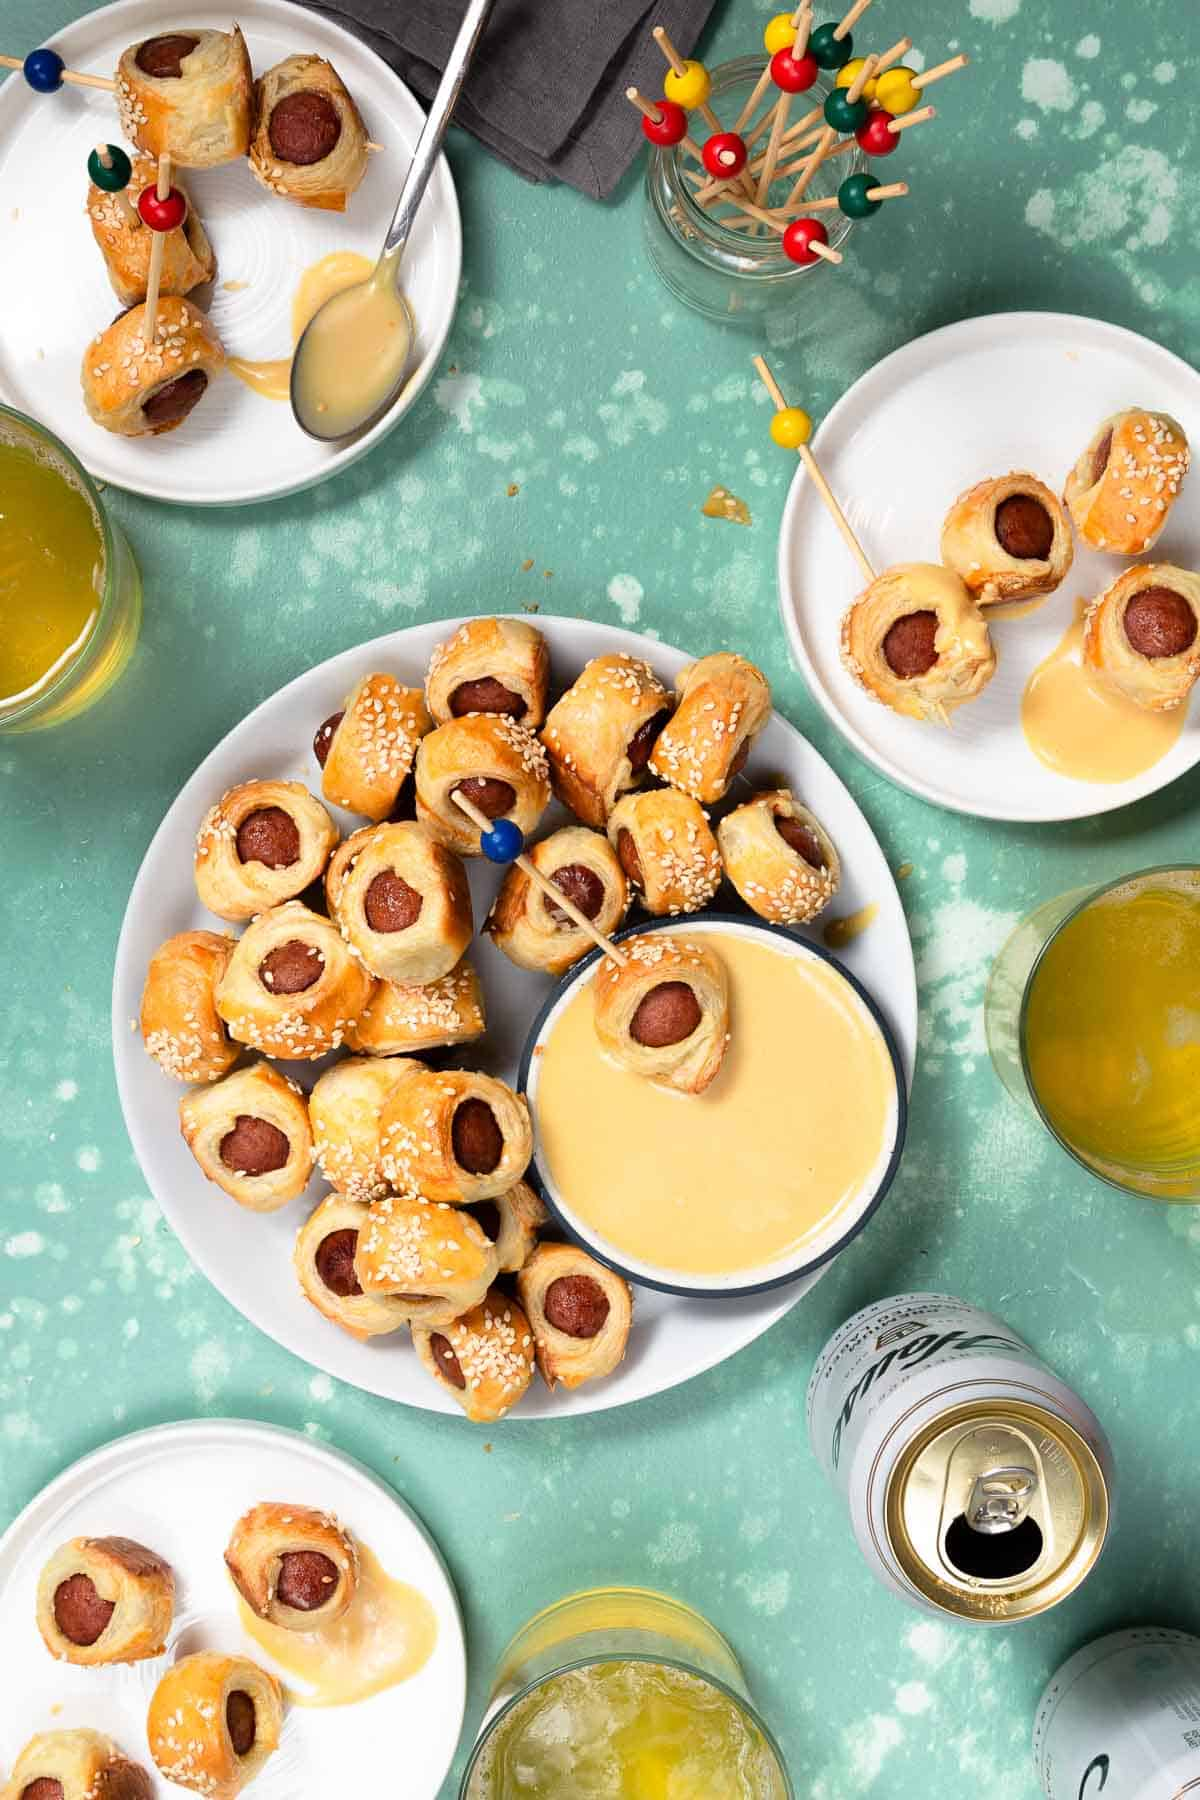 four white plates holding pigs in a blanket and honey mustard dip next to beer